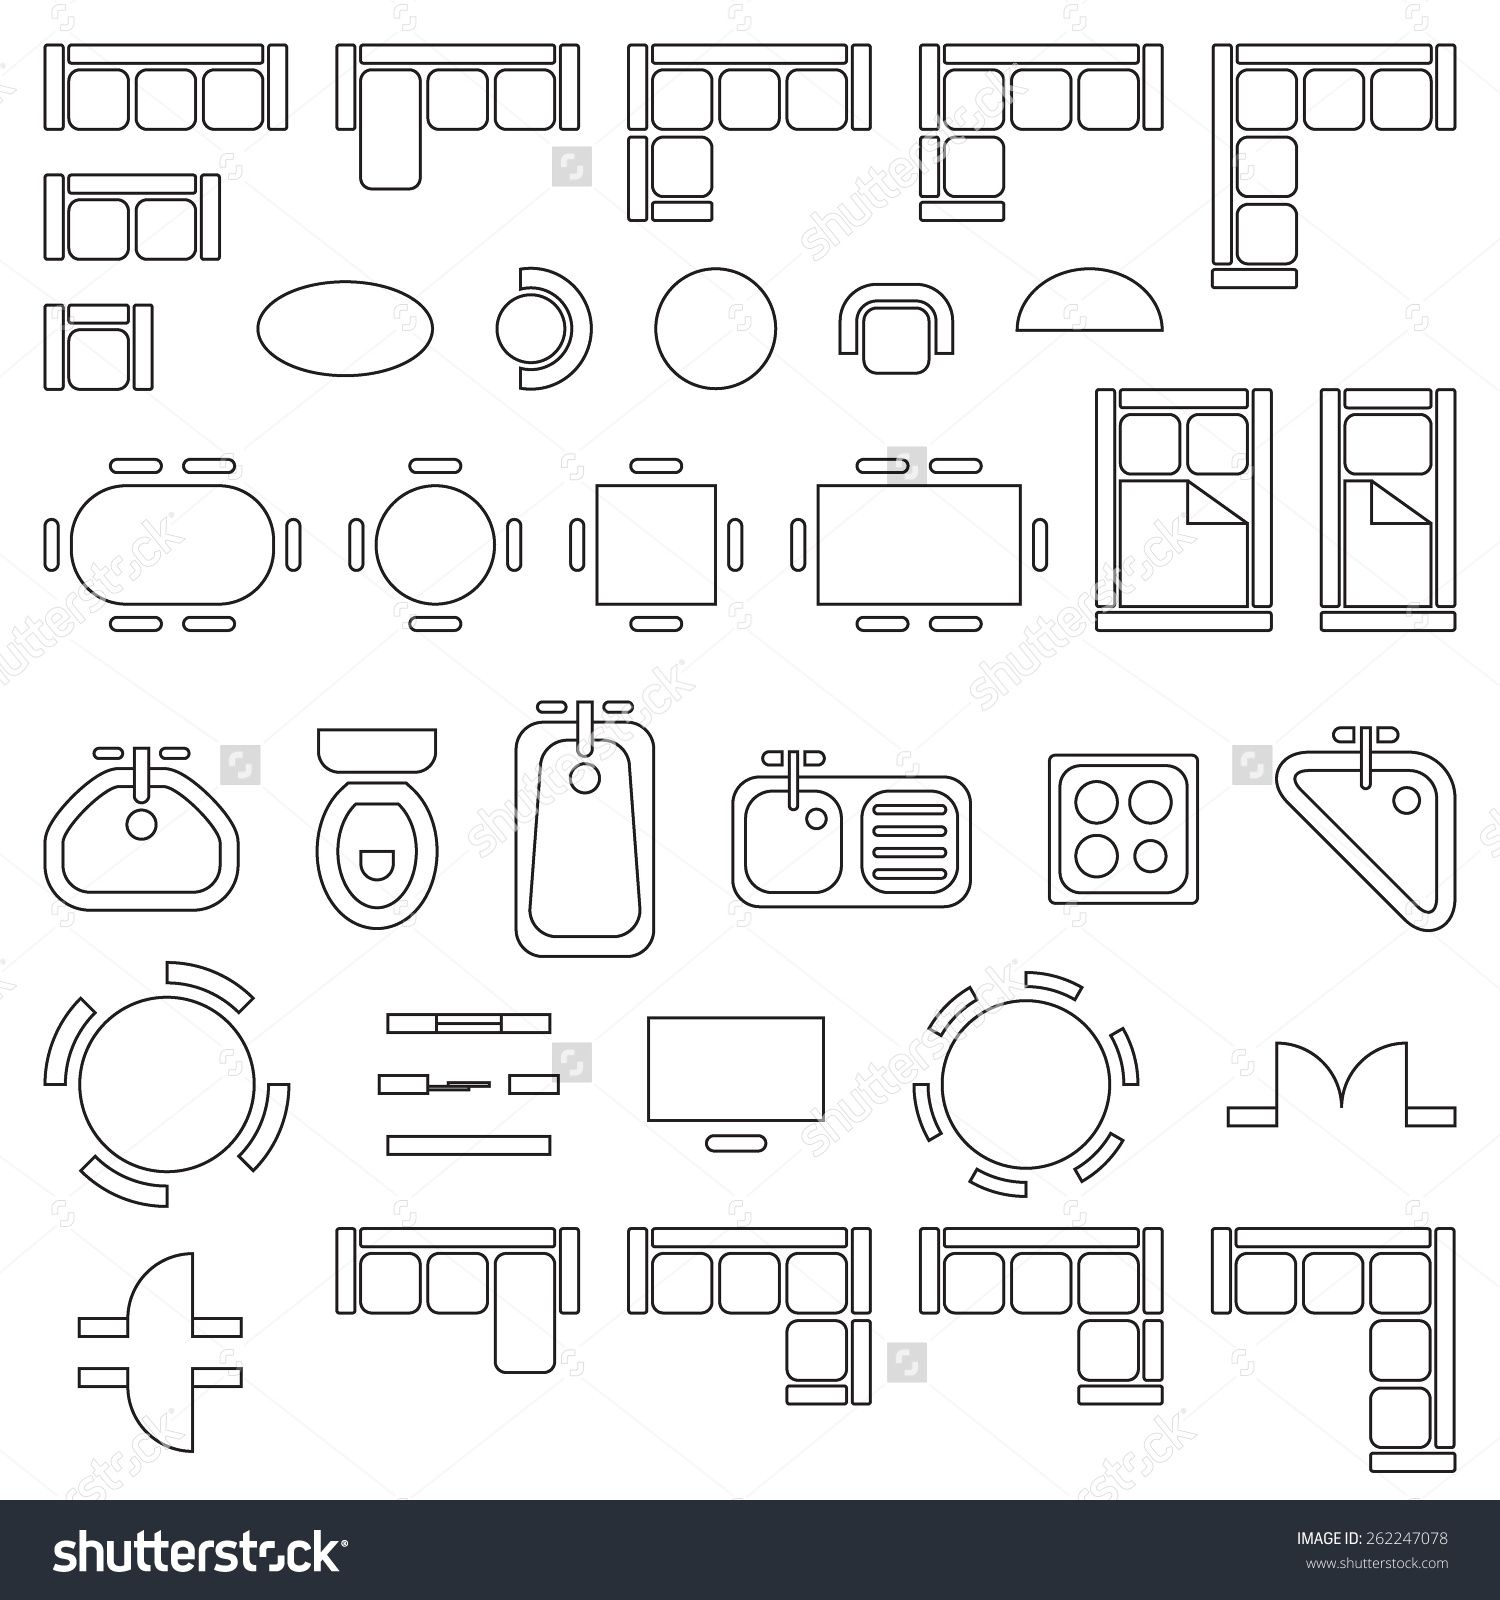 Standard furniture symbols used in architecture plans icons set standard furniture symbols used in architecture plans icons set save to a lightbox dining room buycottarizona